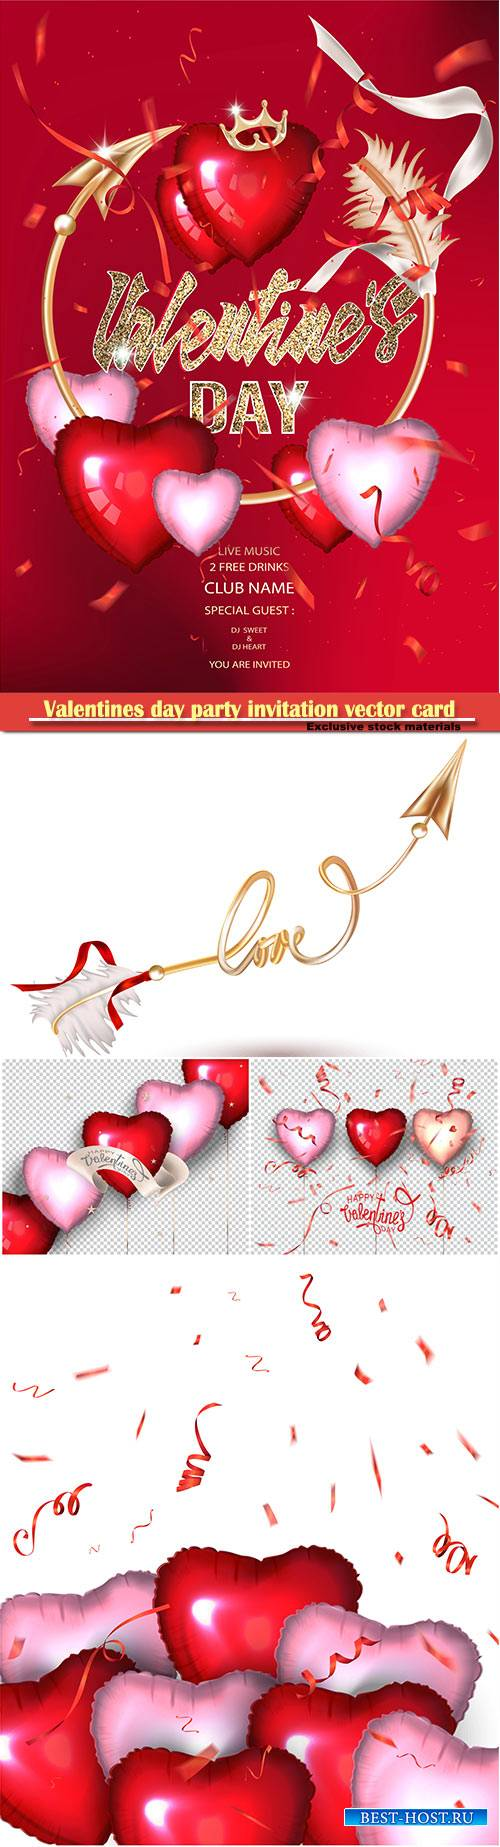 Valentines day party invitation vector card # 4